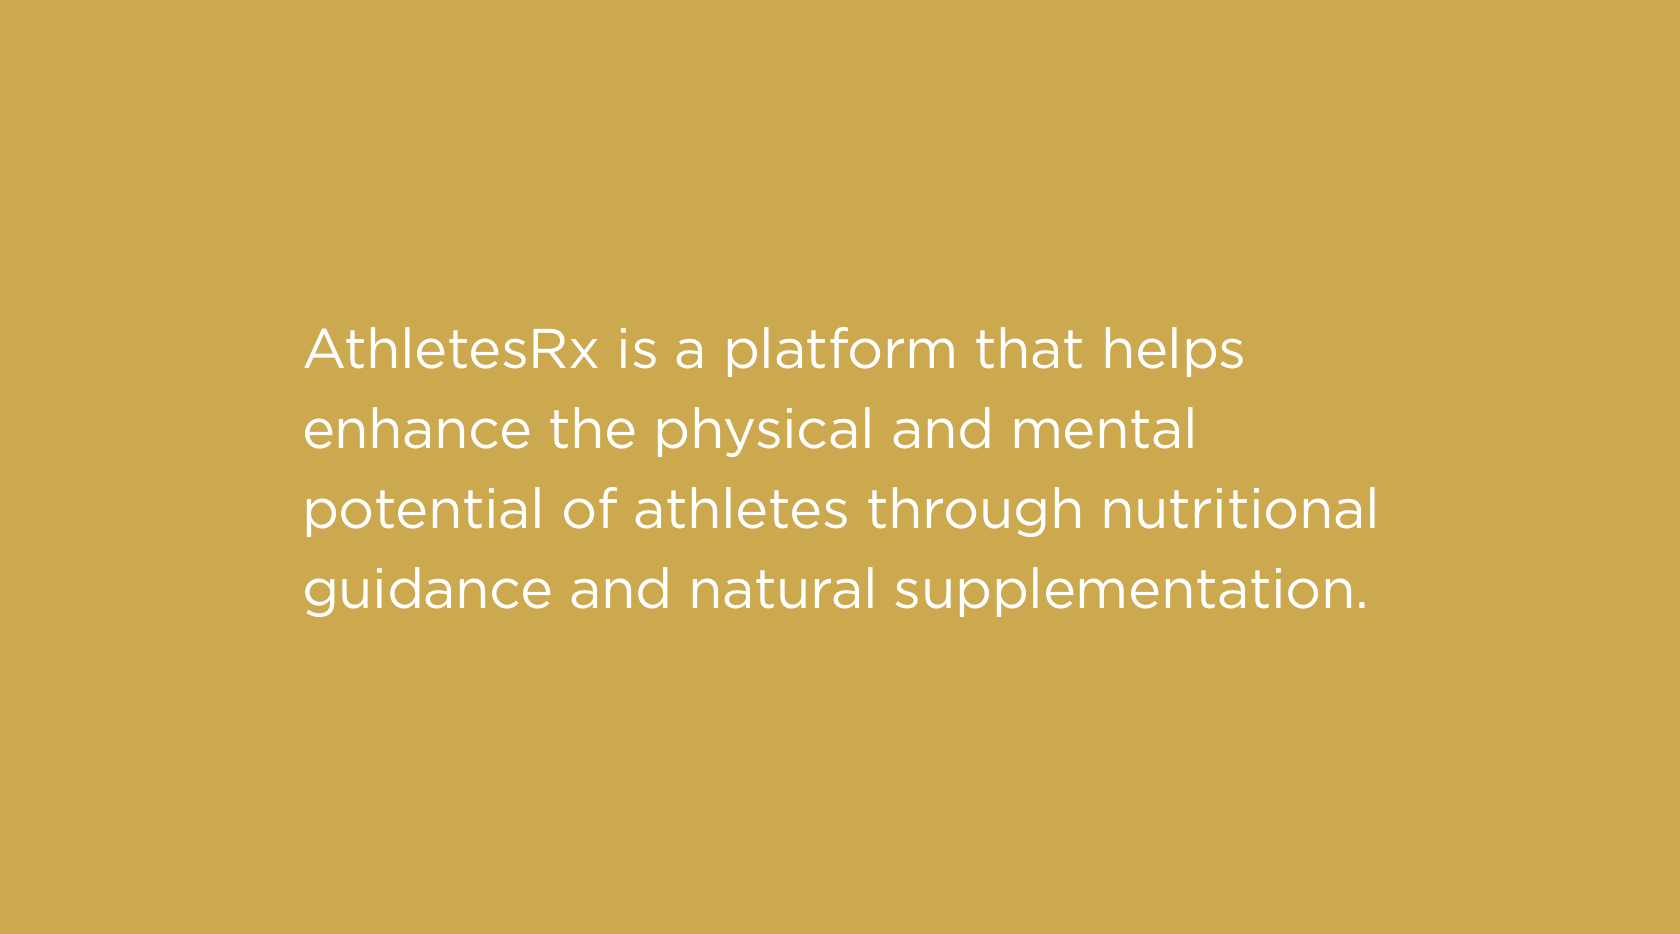 AthletesRx brand positioning